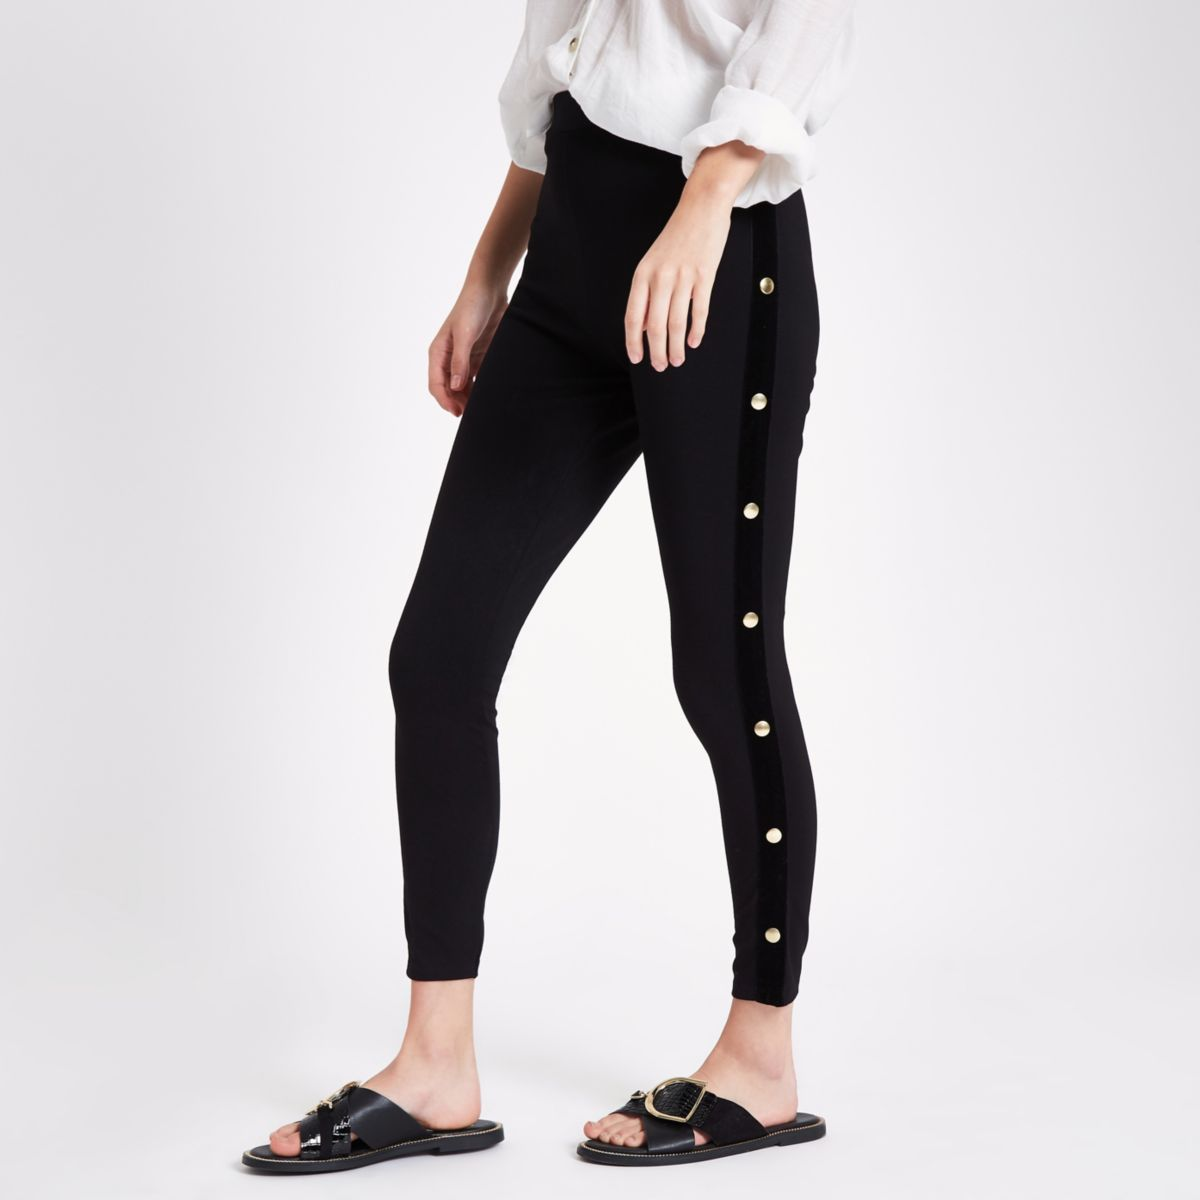 Black popper side leggings